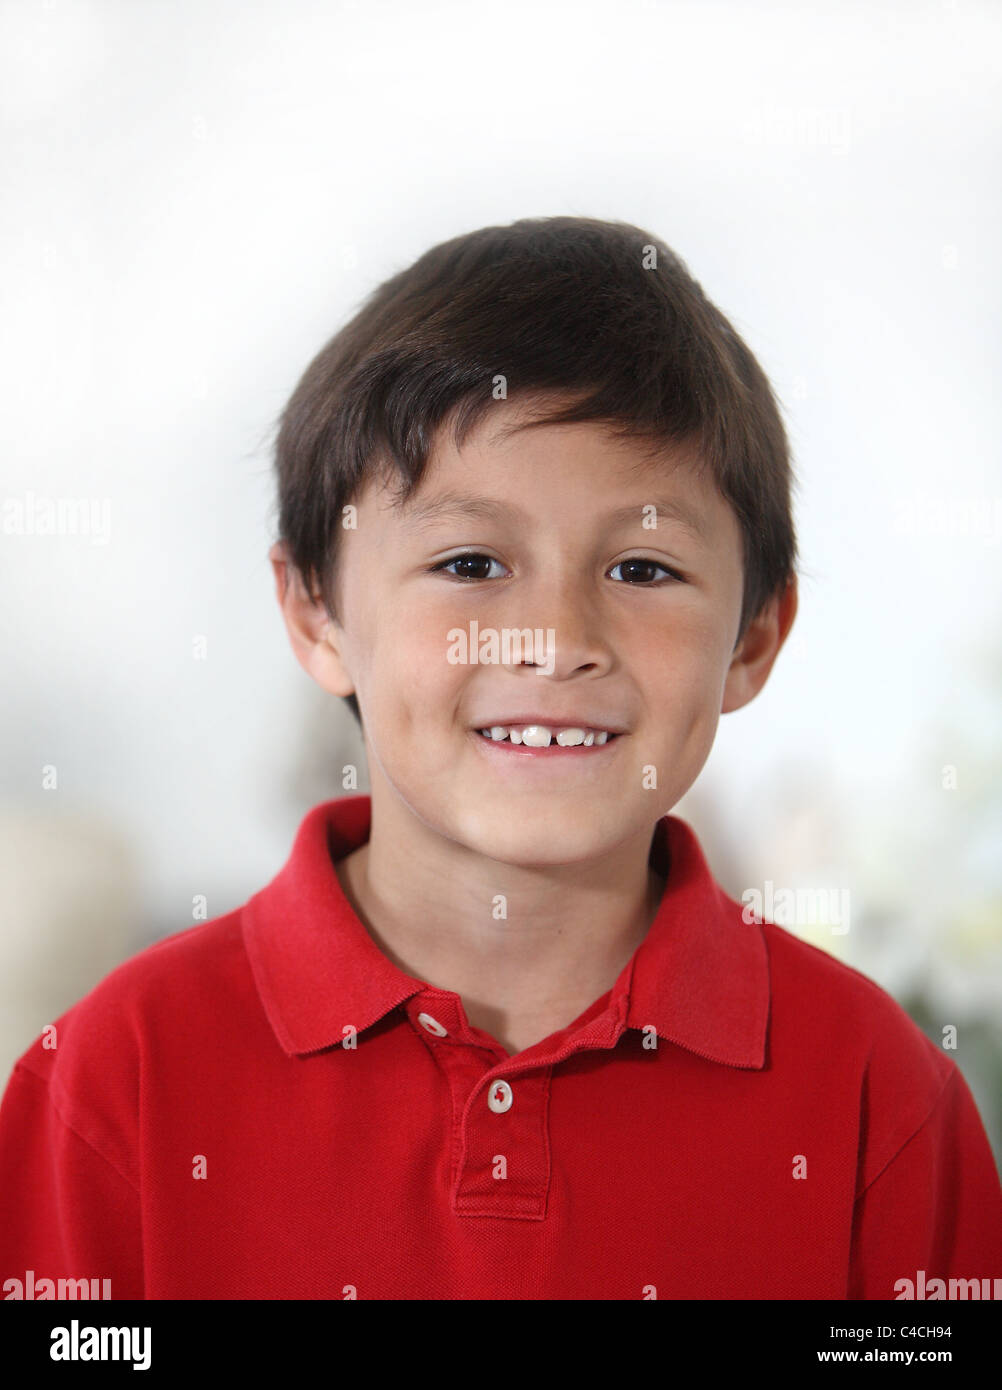 Happy cheerful young Latino or Hispanic boy in red shirt against light background in portrait mode with copy space - Stock Image